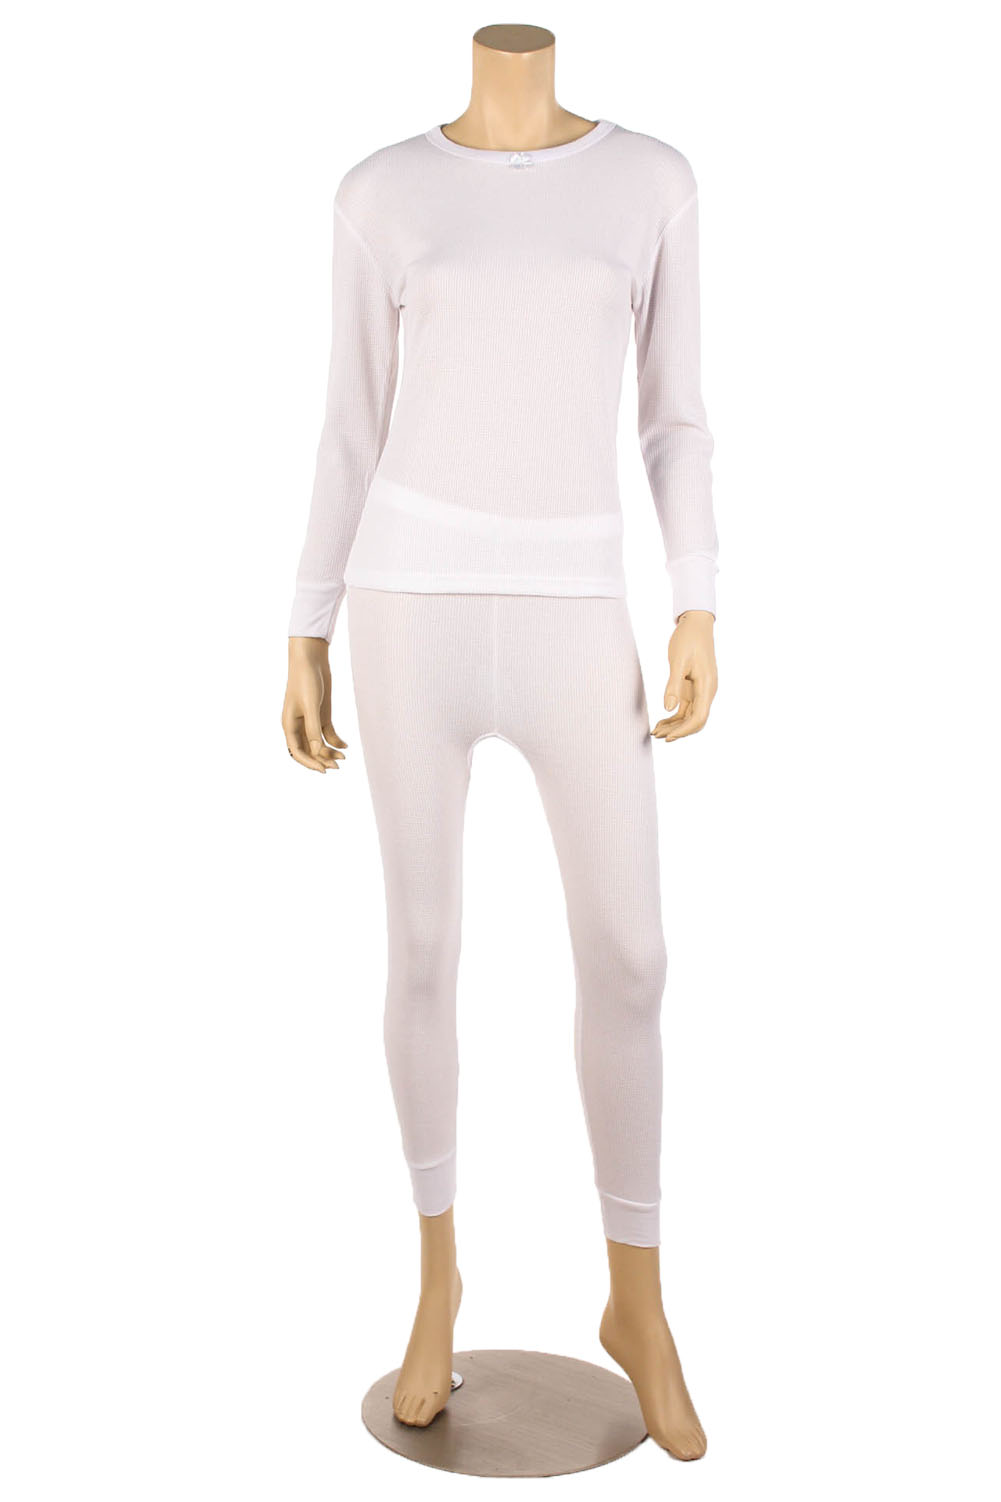 Womens 2pc 100% Cotton Thermal Underwear Set Long Johns Top &amp ...